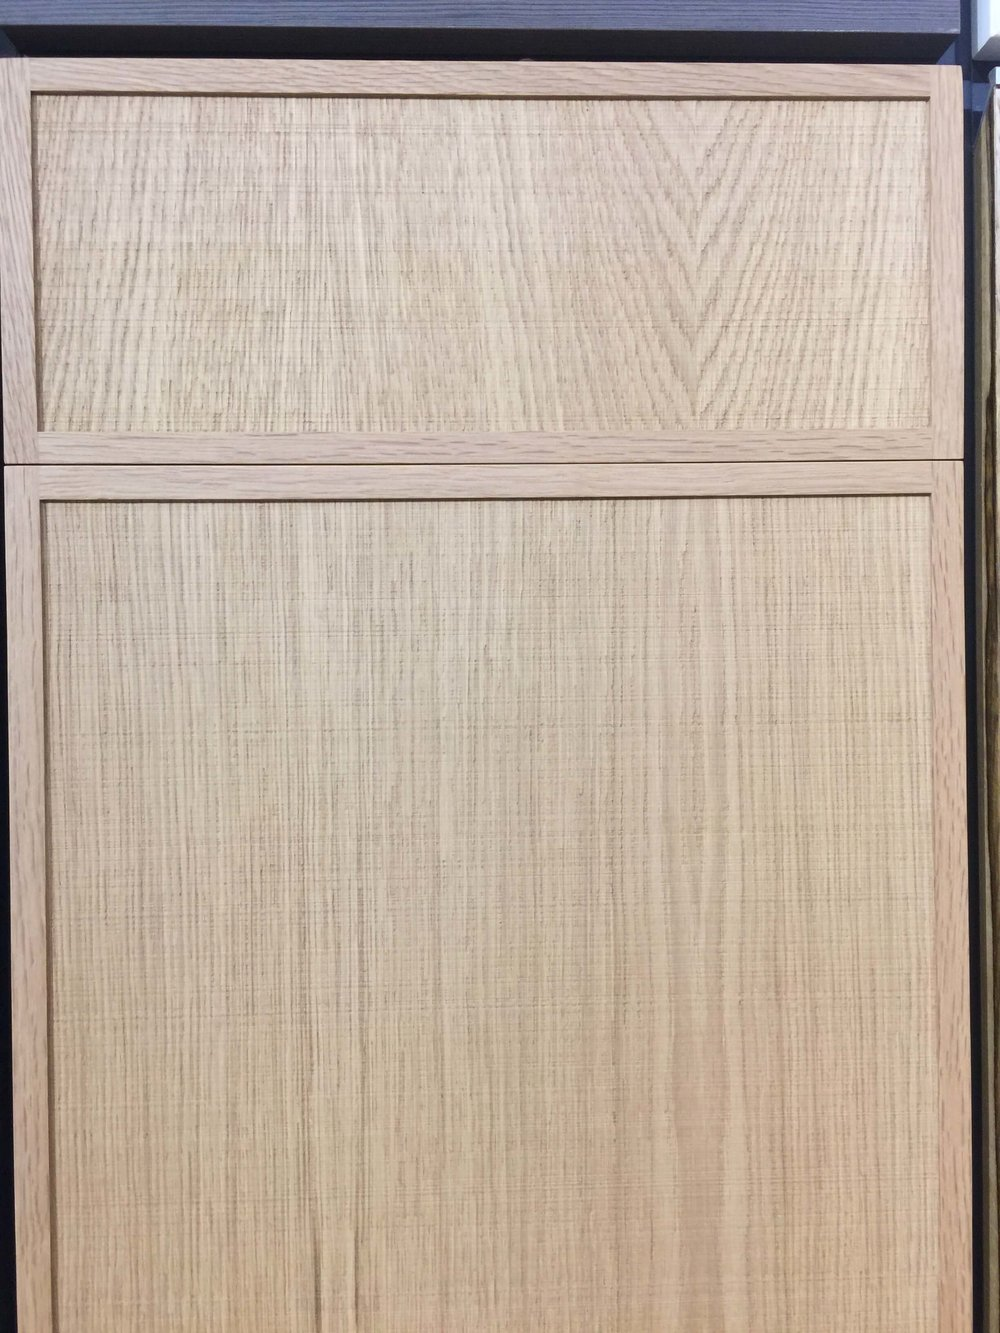 Check out this gorgeous brushed oak finish on a cabinet door from  Harmoni Kitchens . #cabinetry #cabinets #oakcabinets